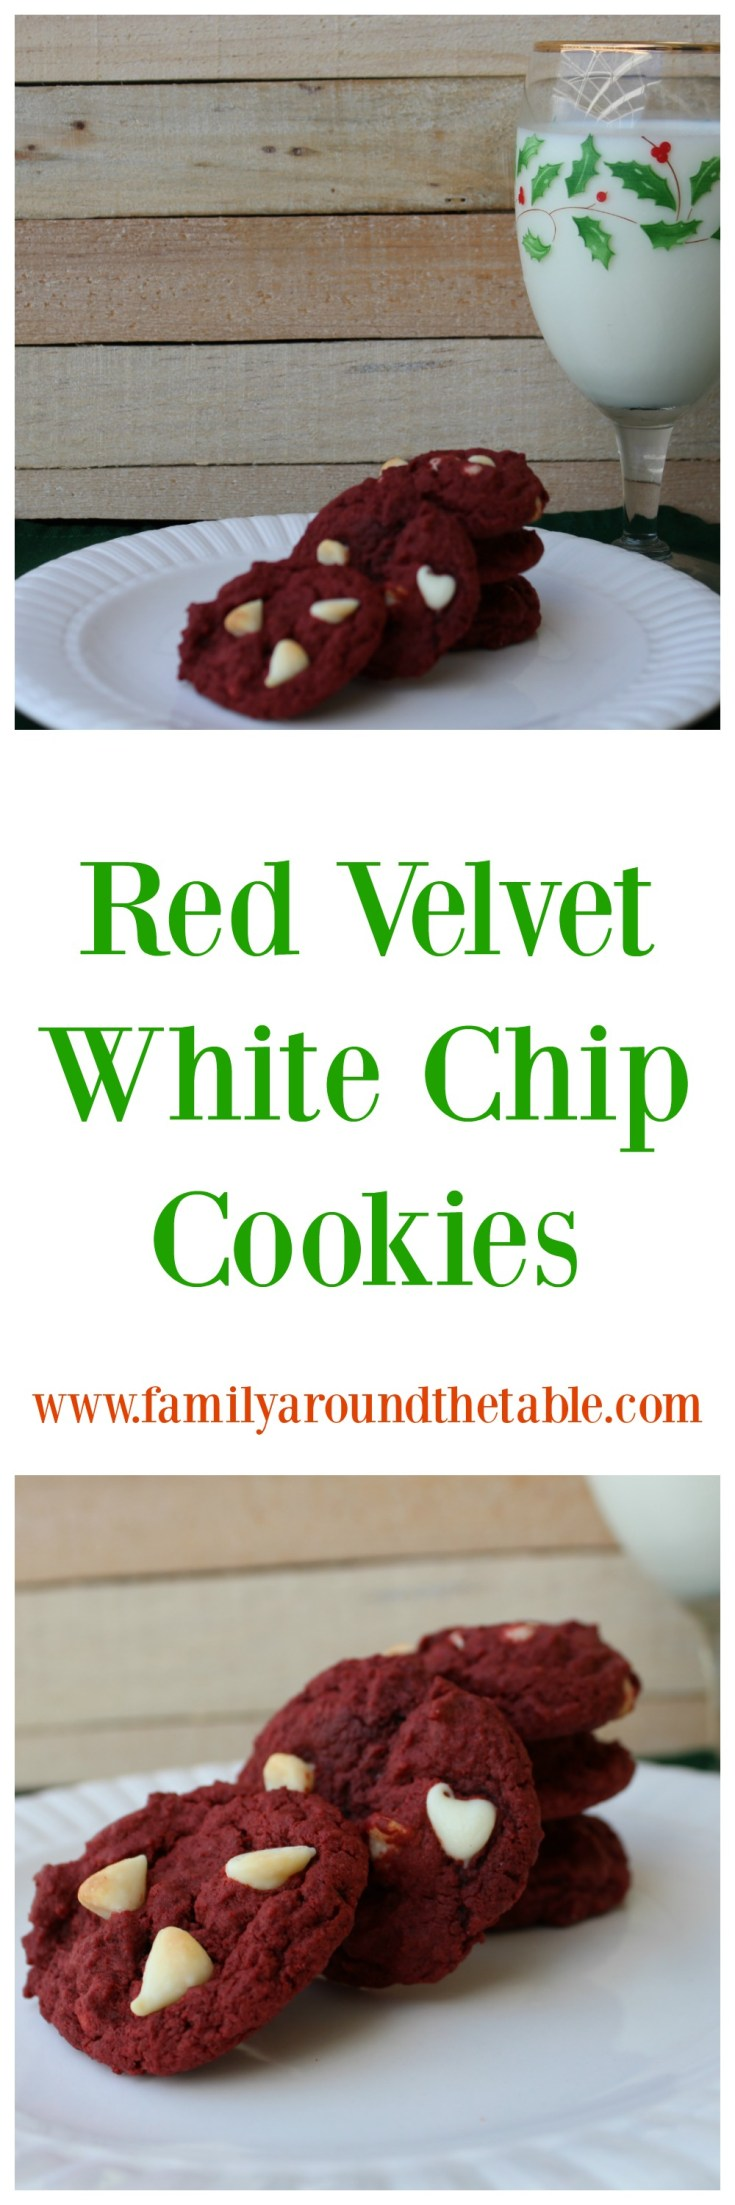 A classic Southern dessert in cookie form!